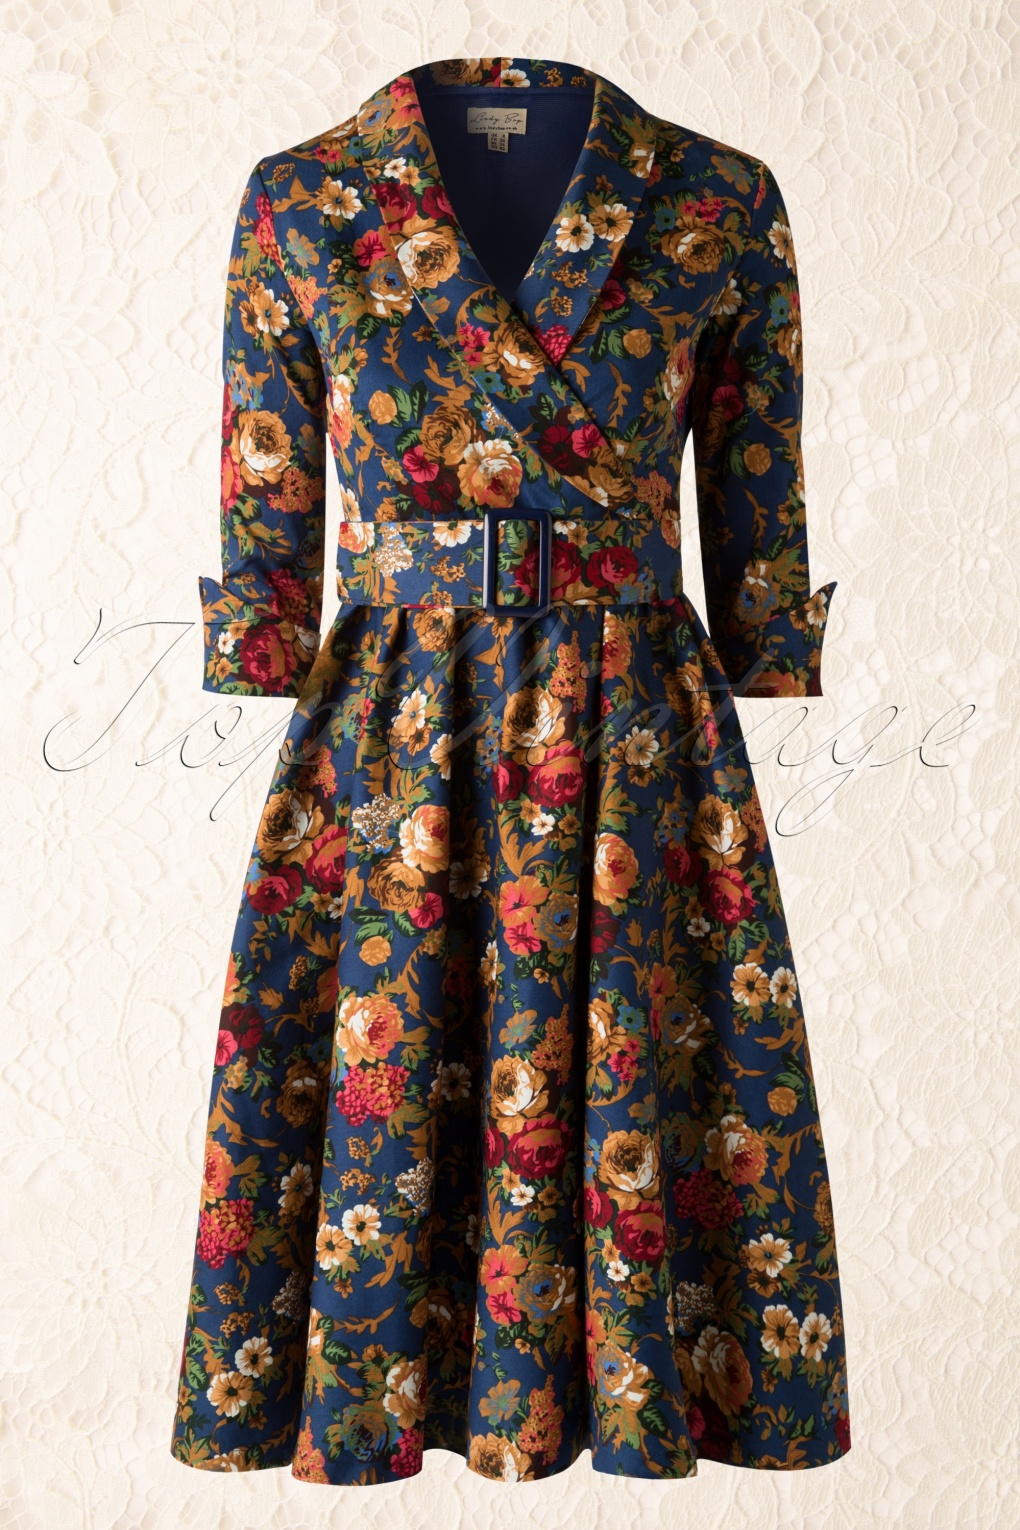 50s vivi vintage floral swing dress in dark blue